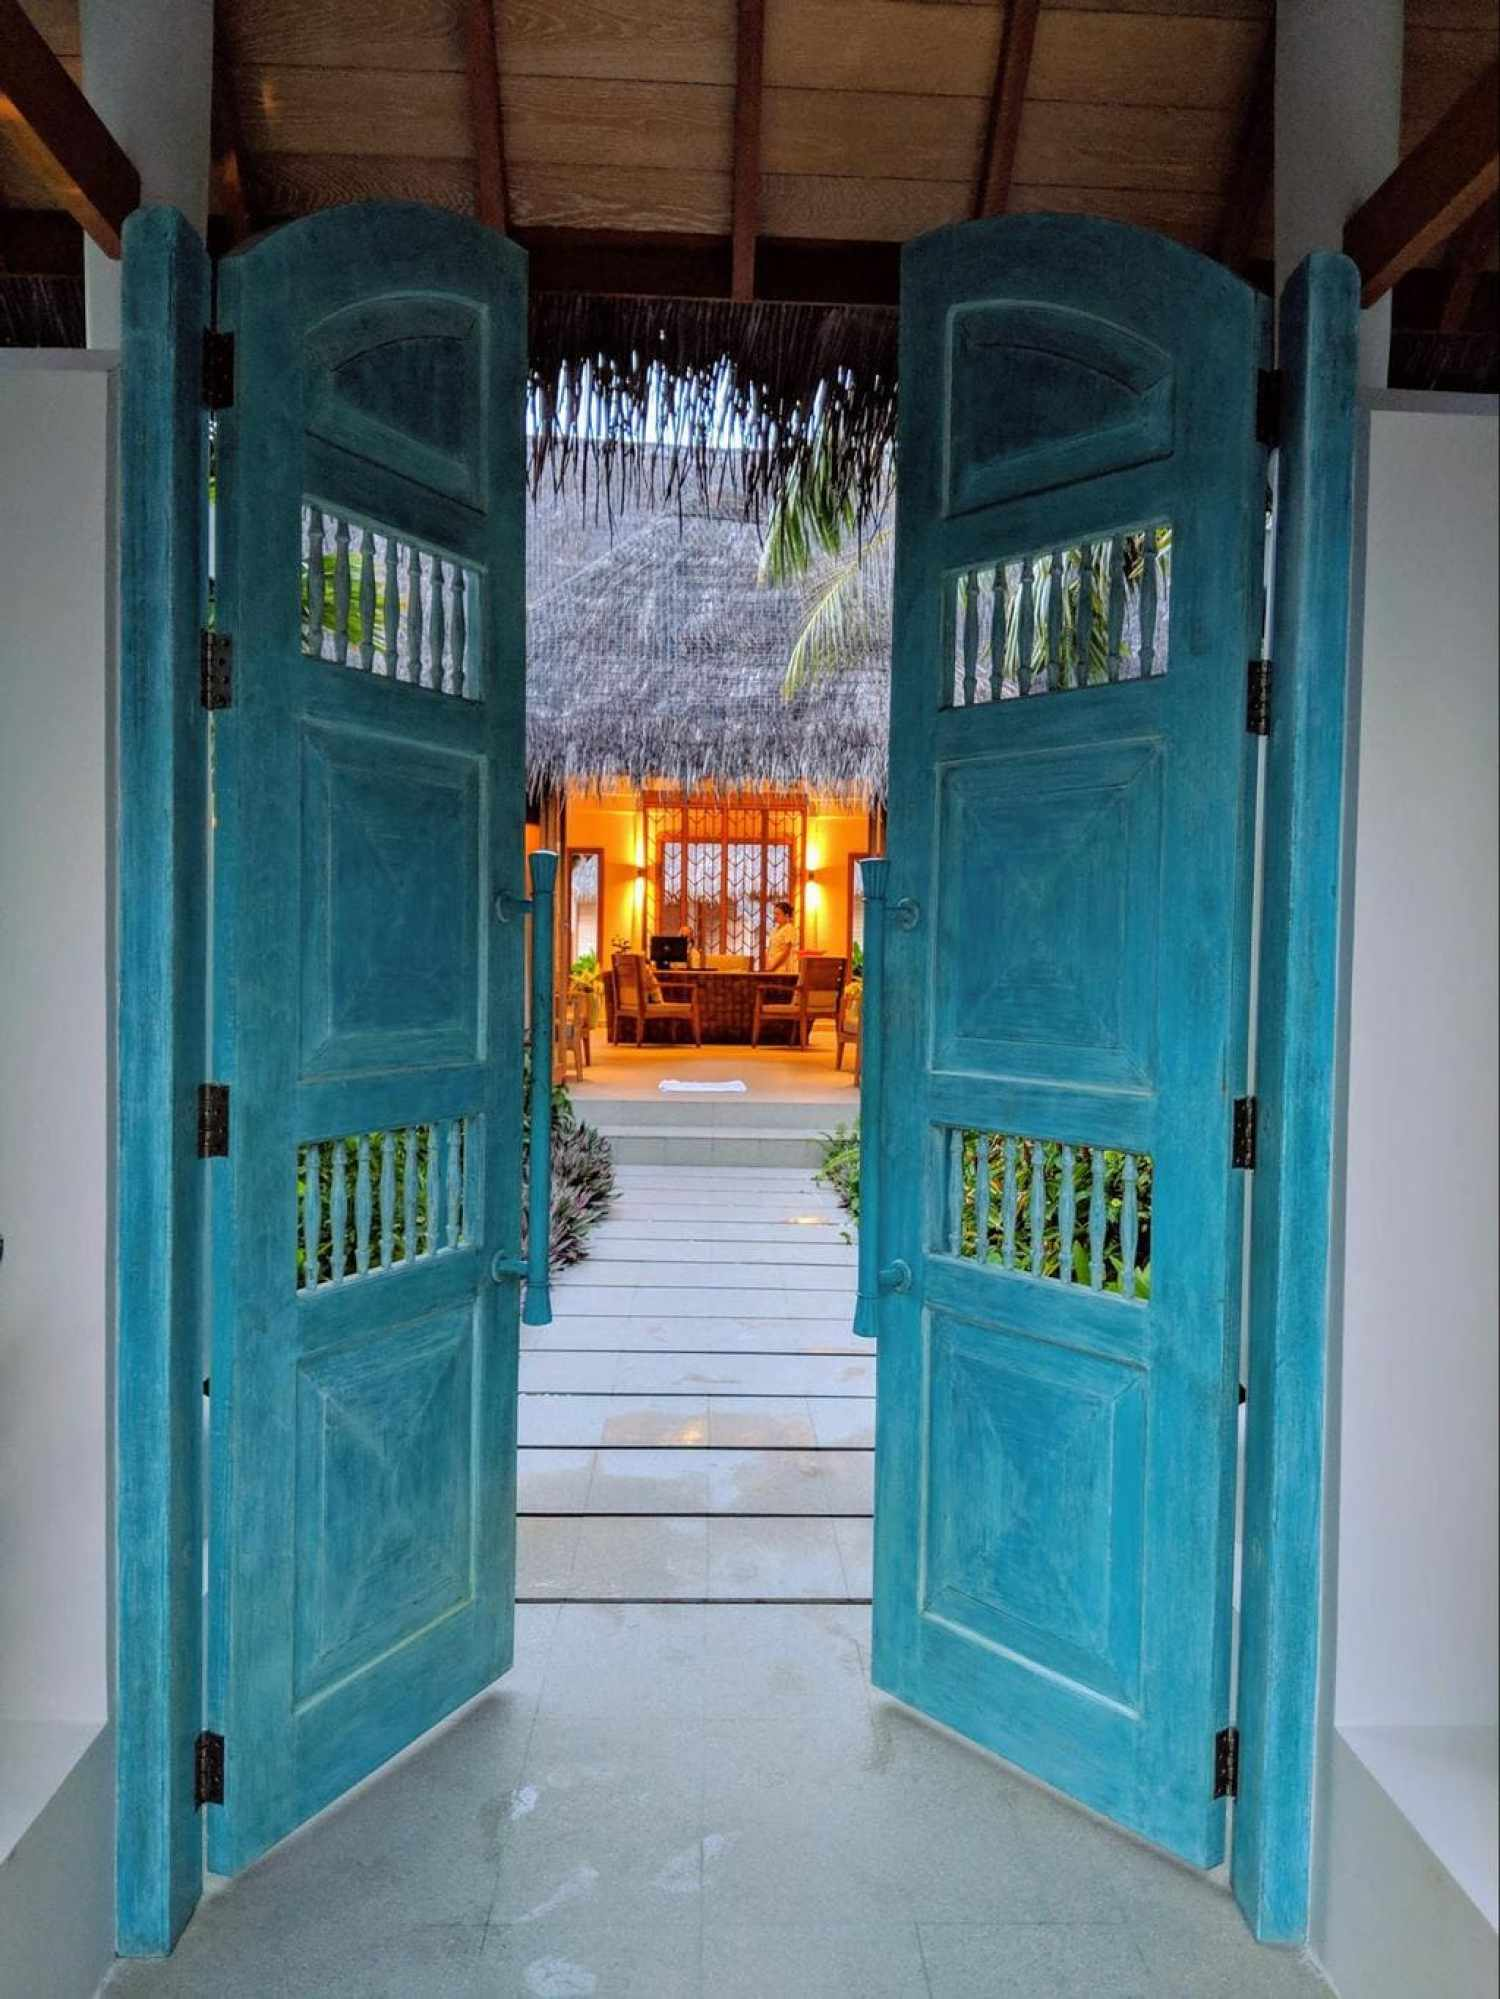 The entrance of Serenity Spa